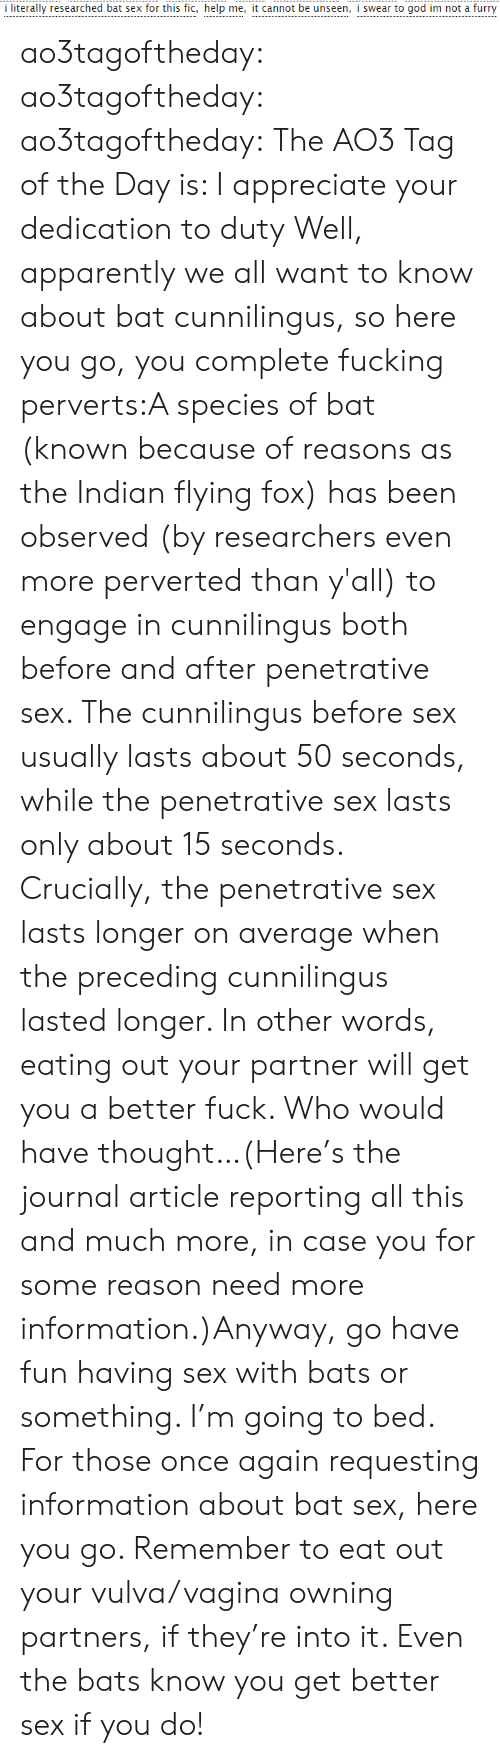 I Swear To God: i literally researched bat sex for this fic, help me, it cannot be unseen, i swear to god im not a furry ao3tagoftheday:  ao3tagoftheday:  ao3tagoftheday:  The AO3 Tag of the Day is: I appreciate your dedication to duty  Well, apparently we all want to know about bat cunnilingus, so here you go, you complete fucking perverts:A species of bat (known because of reasons as the Indian flying fox) has been observed (by researchers even more perverted than y'all) to engage in cunnilingus both before and after penetrative sex. The cunnilingus before sex usually lasts about 50 seconds, while the penetrative sex lasts only about 15 seconds. Crucially, the penetrative sex lasts longer on average when the preceding cunnilingus lasted longer. In other words, eating out your partner will get you a better fuck. Who would have thought…(Here's the journal article reporting all this and much more, in case you for some reason need more information.)Anyway, go have fun having sex with bats or something. I'm going to bed.  For those once again requesting information about bat sex, here you go. Remember to eat out your vulva/vagina owning partners, if they're into it. Even the bats know you get better sex if you do!